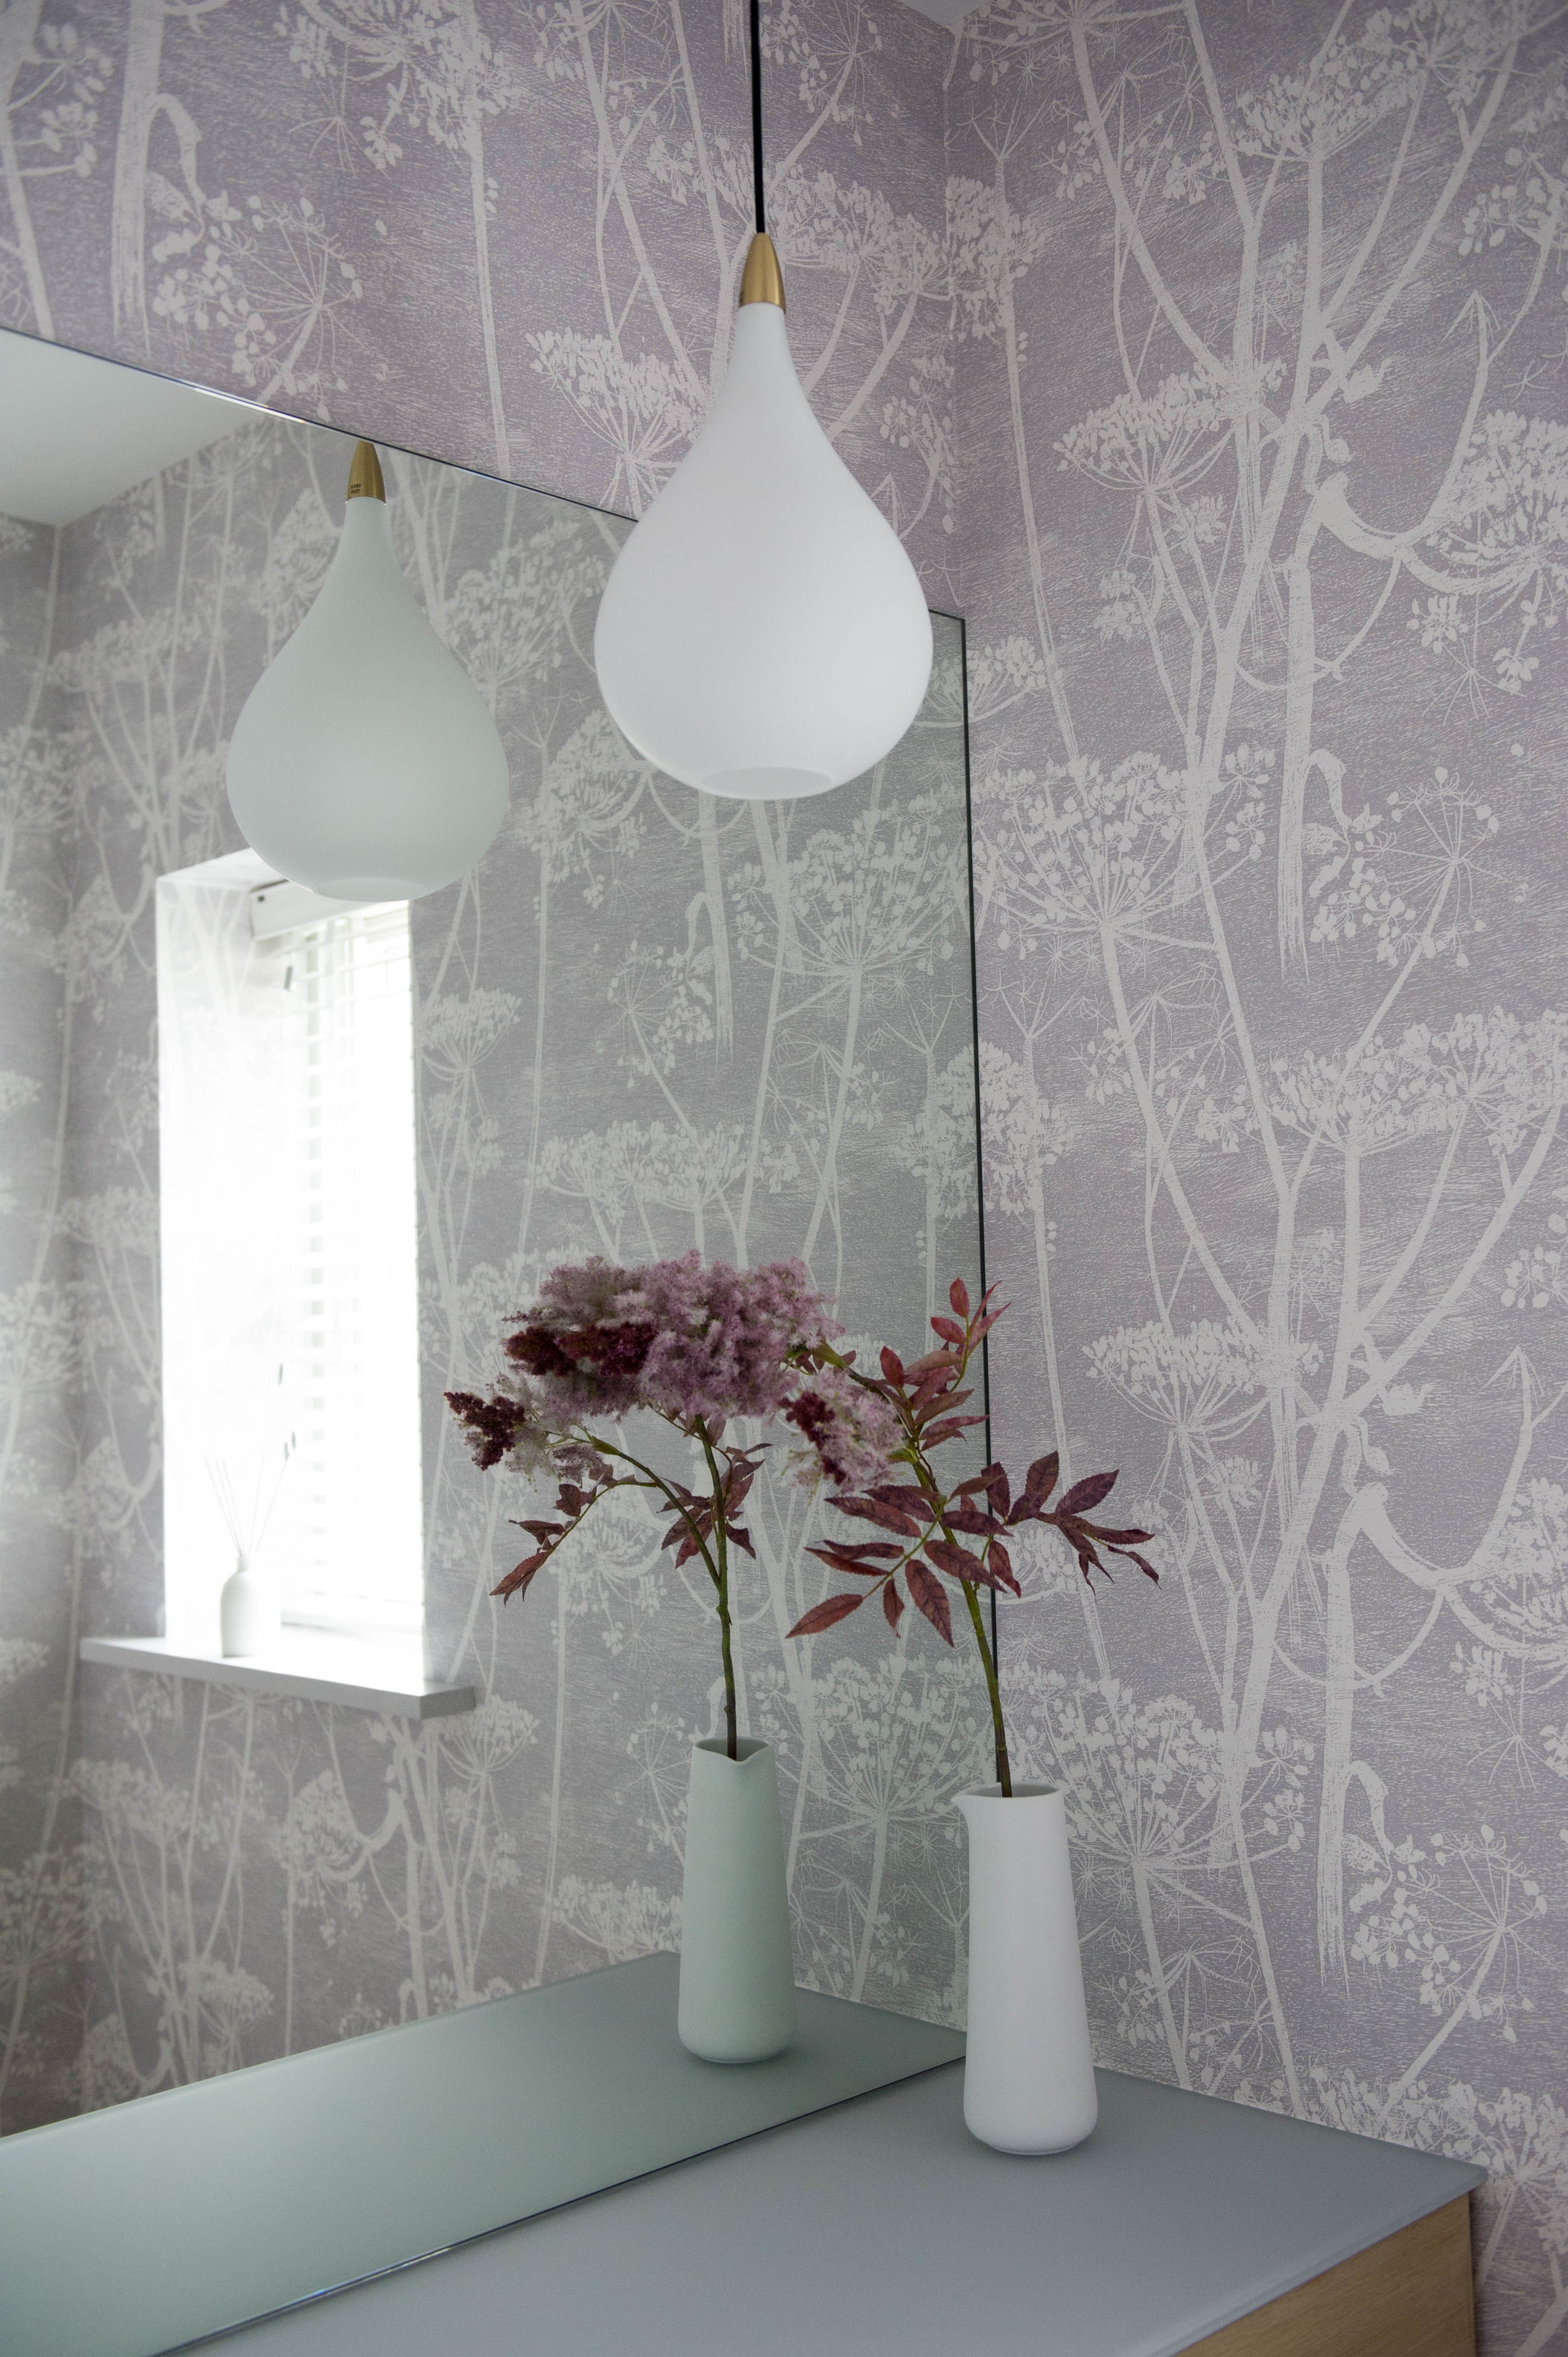 Bathroom design with pretty, botanical wallpaper and vase of flowers.